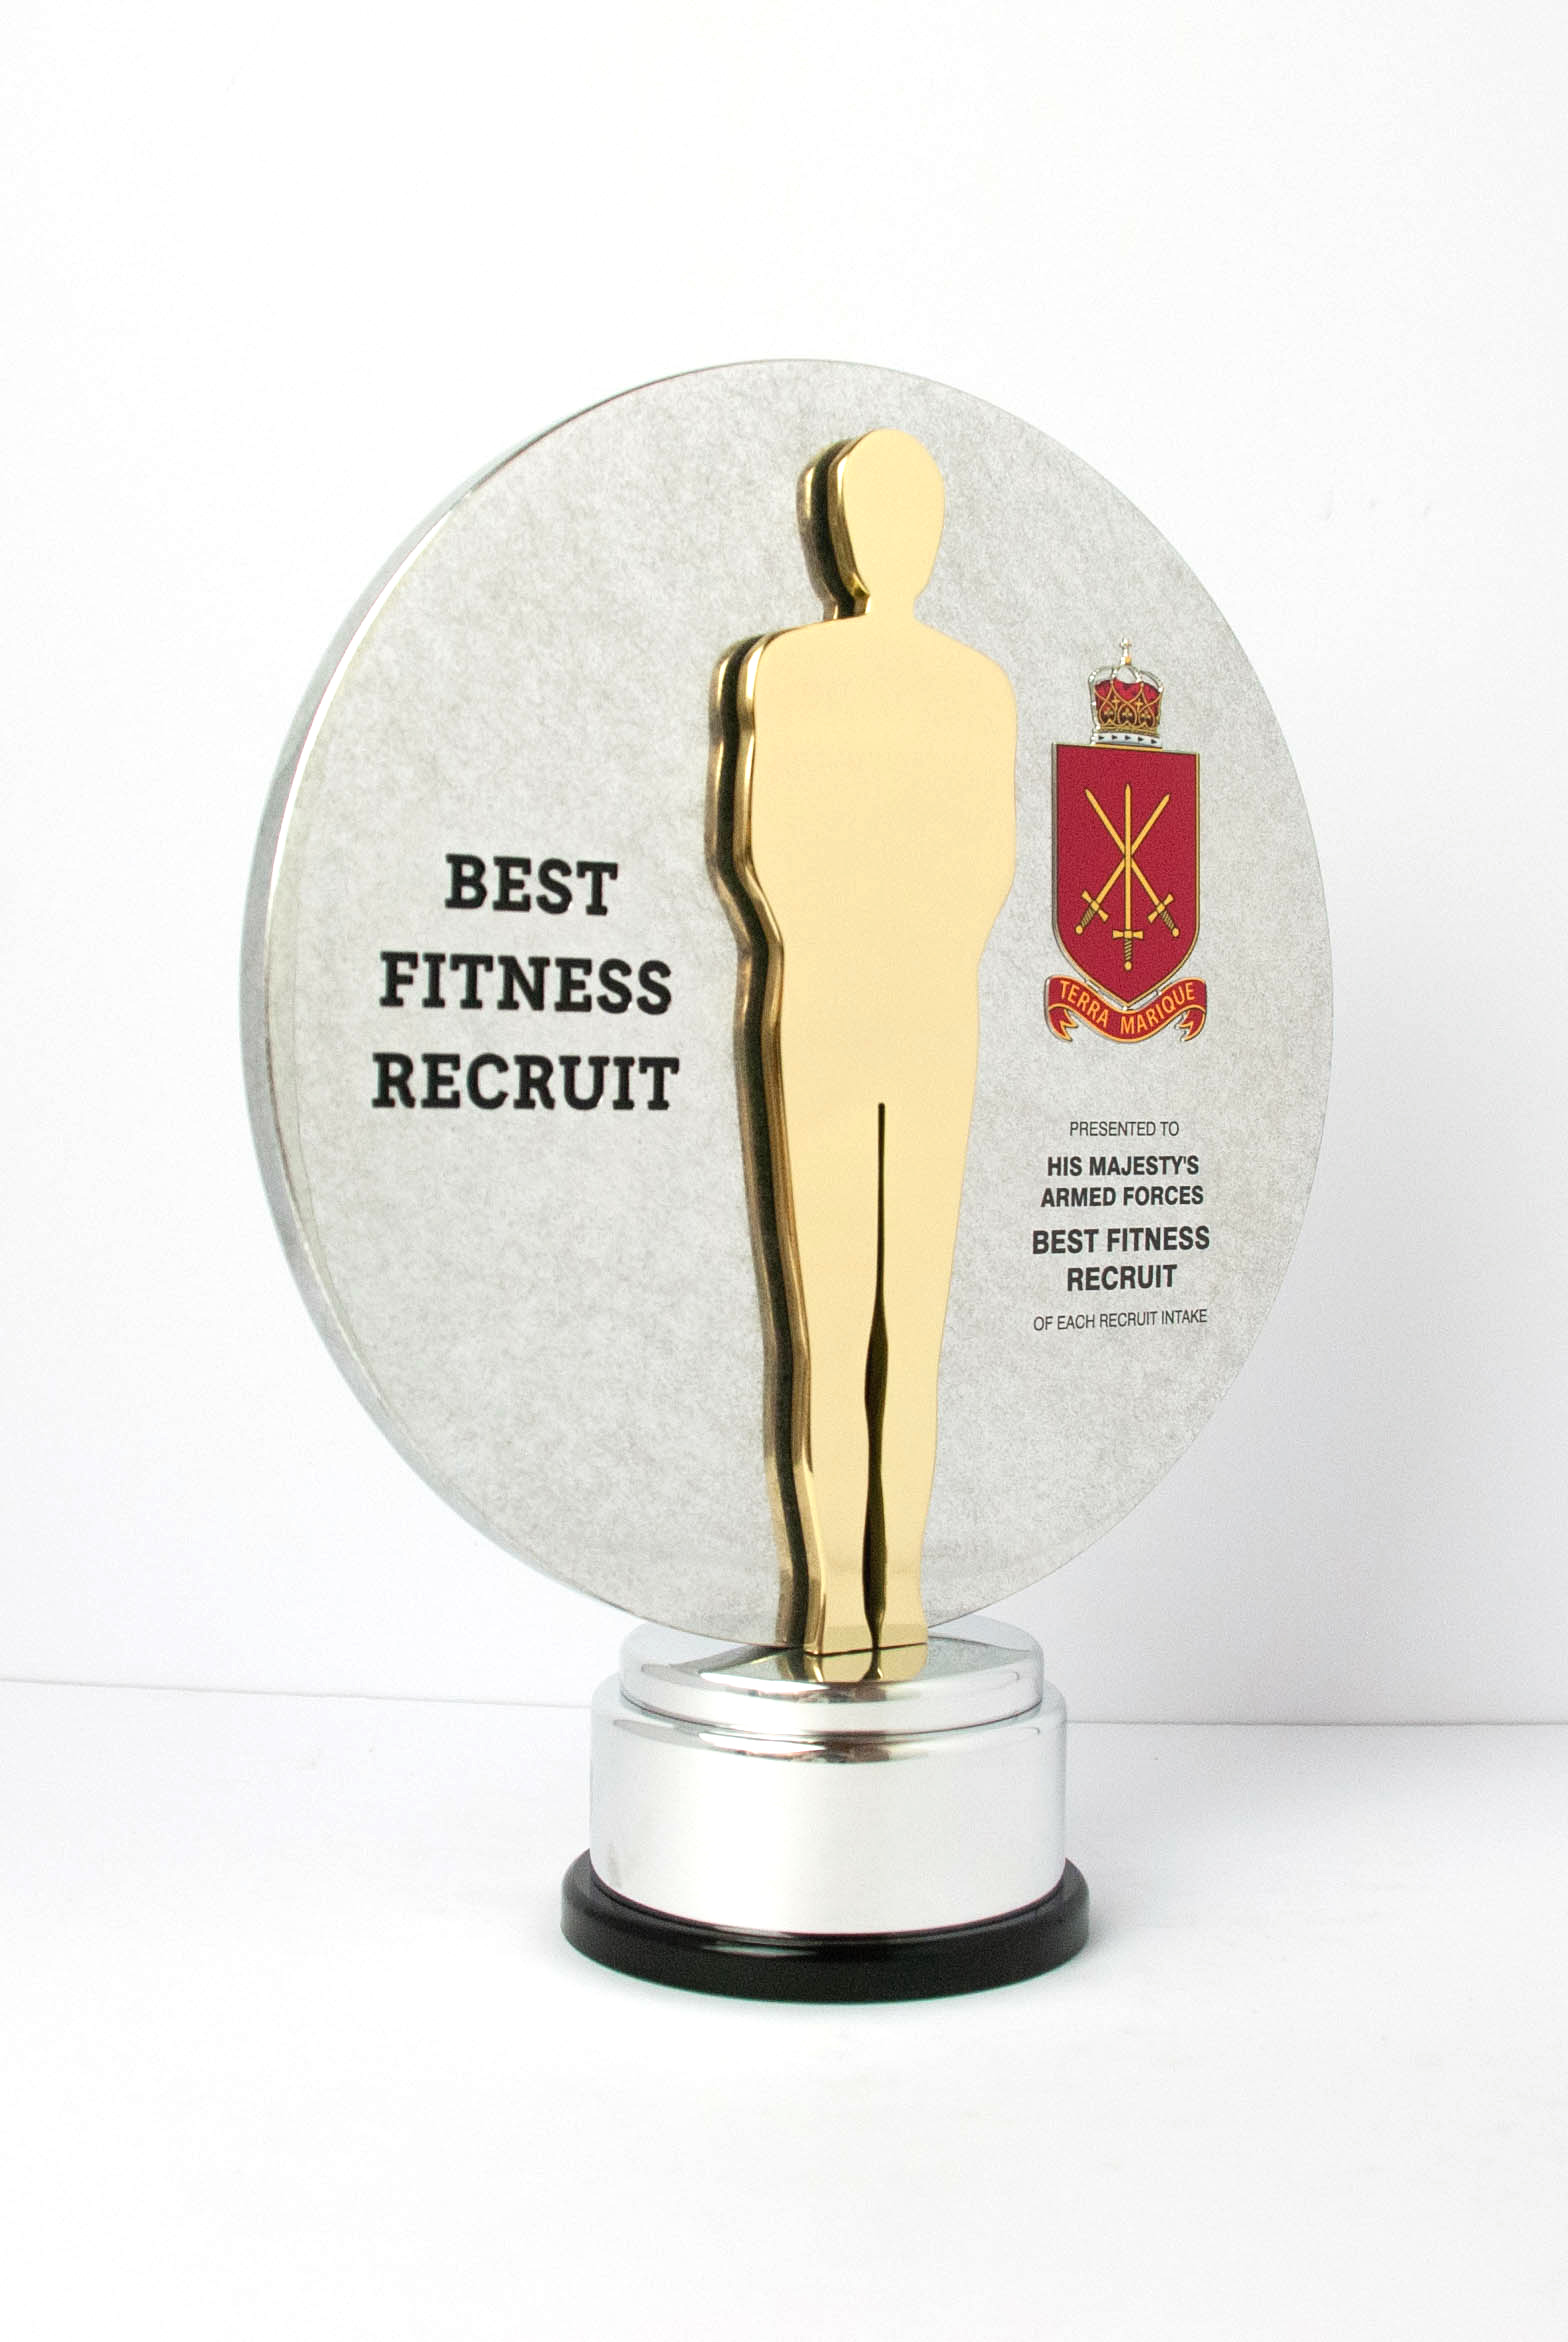 HMAF Best Fitness Recruit Custom Award